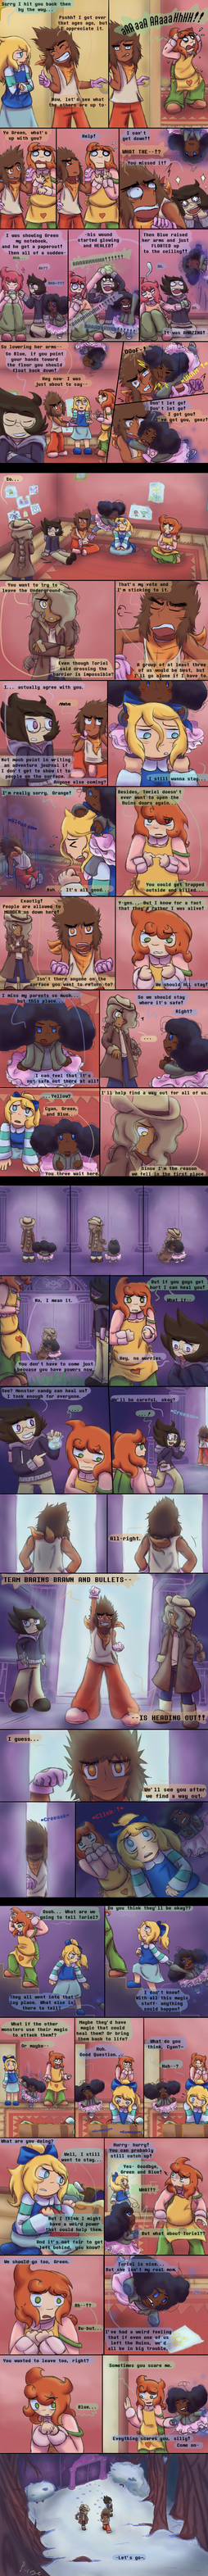 TSWFBY- page 17 by Passionrising